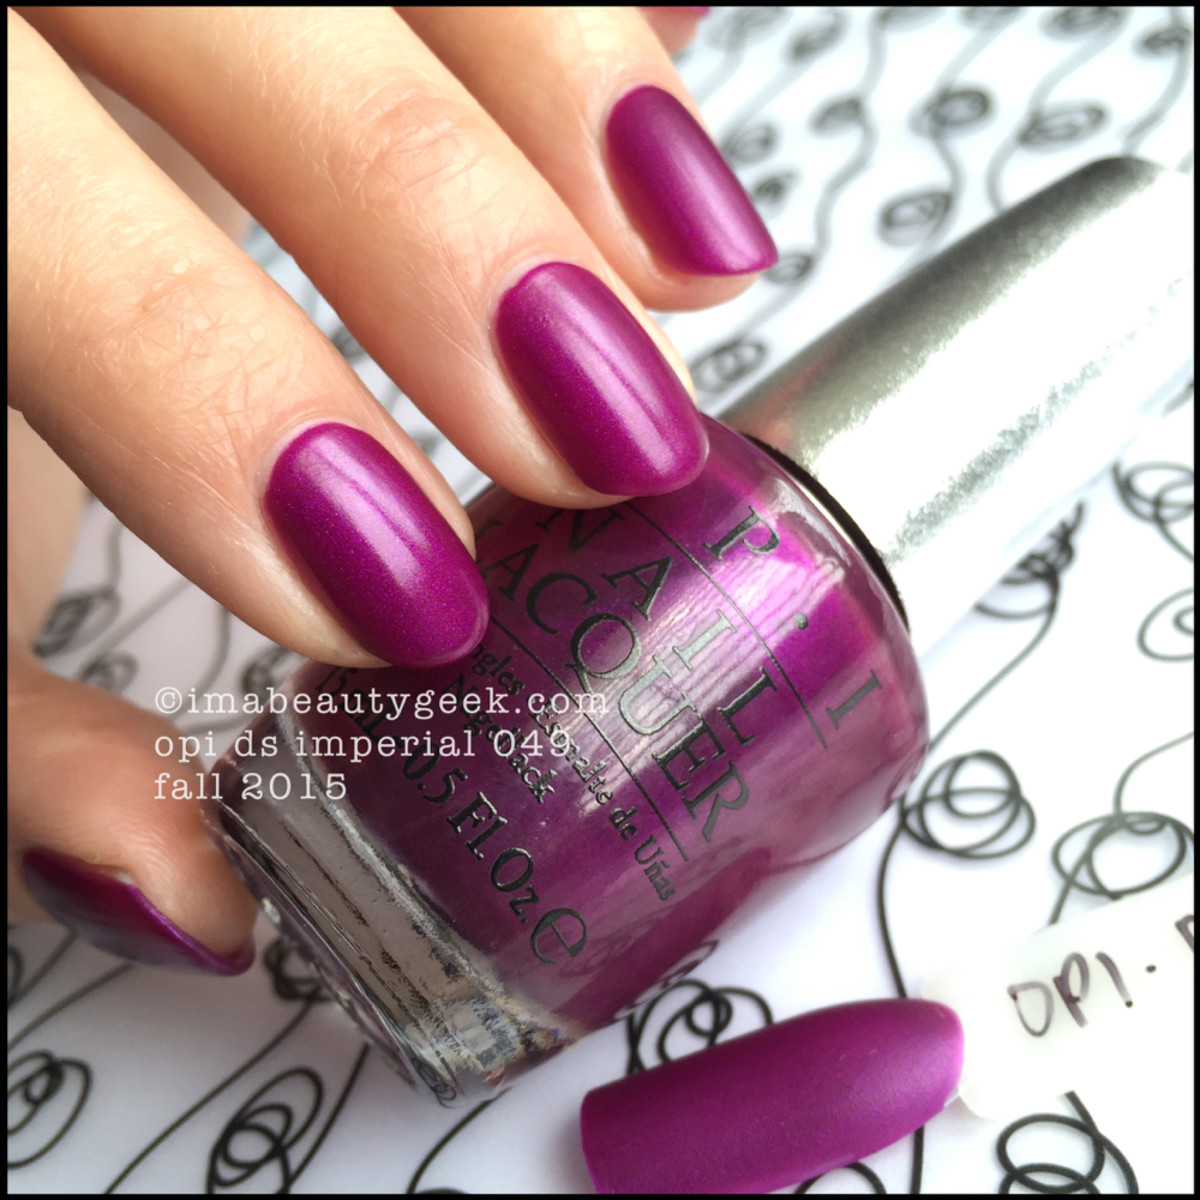 OPI DS Imperial 049_OPI DS 2015